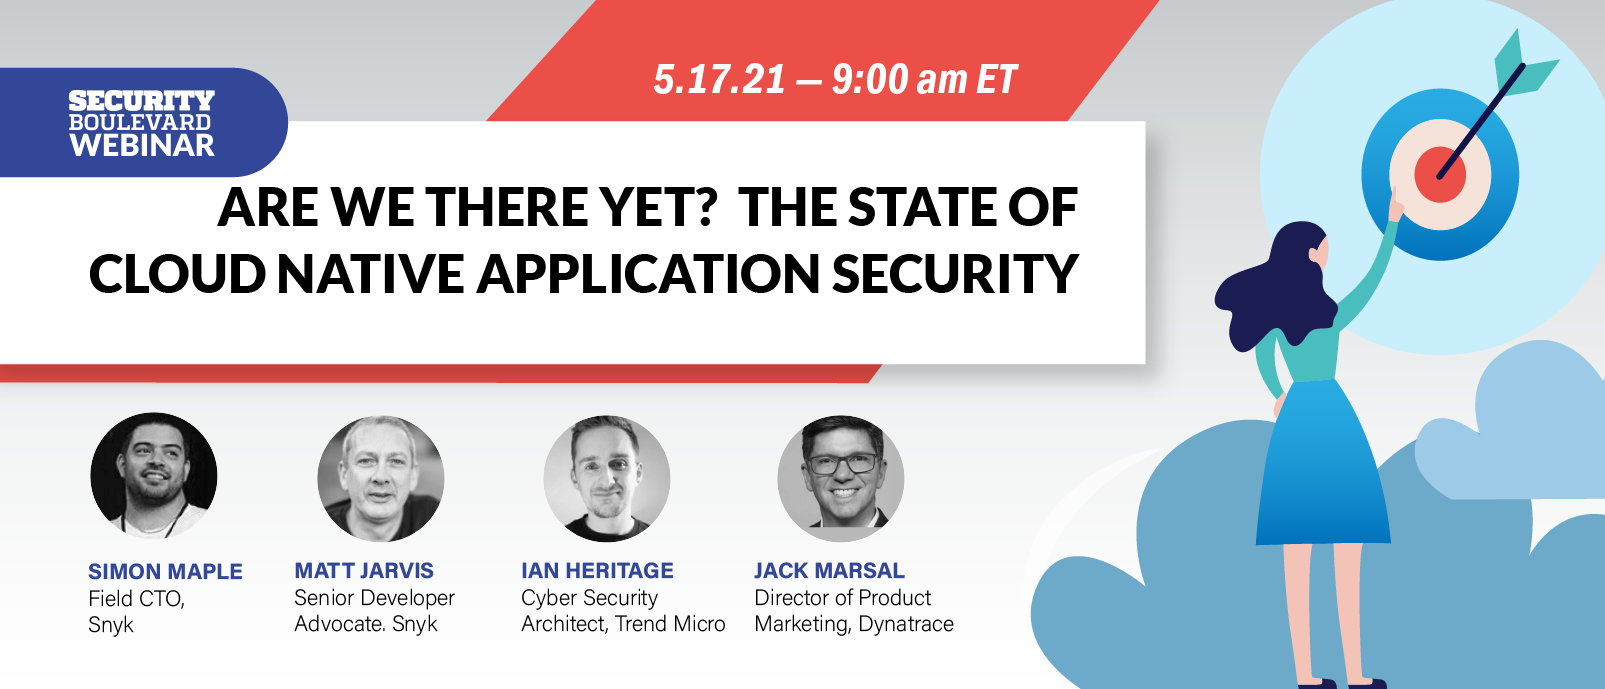 Are We There Yet? The State of Cloud Native Application Security